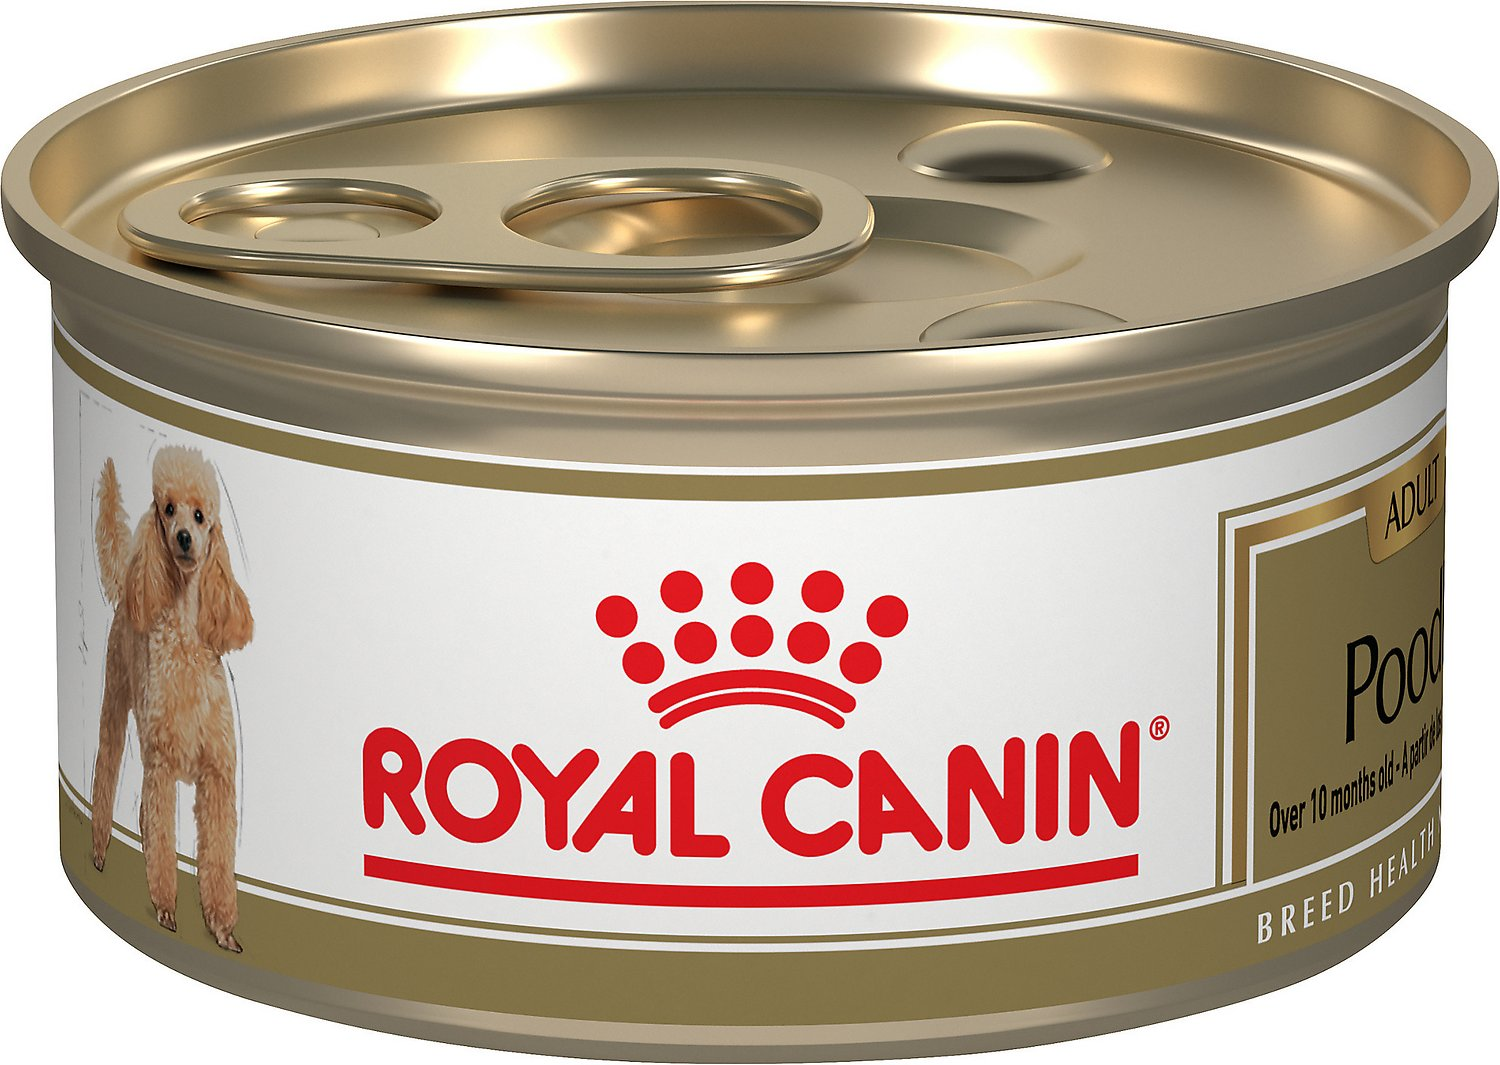 royal canin toy miniature poodle adult canned dog food 3 5 oz pack of 4. Black Bedroom Furniture Sets. Home Design Ideas